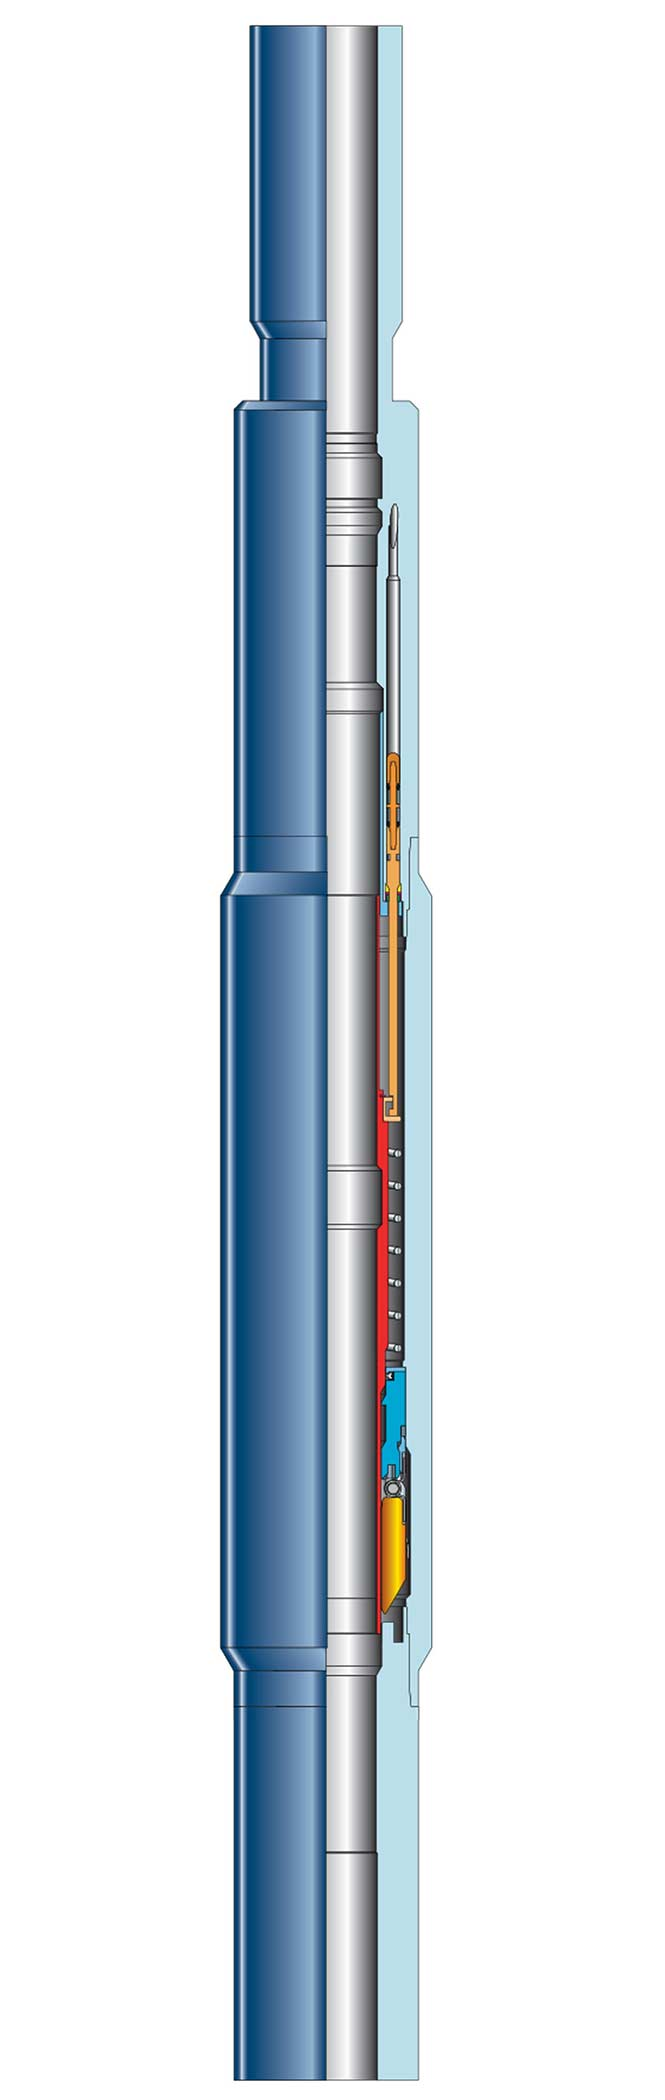 The TRMAXX series subsurface safety valve enables fullbore access and  maximum flow rates with the security of a proven emergency well shut-in system for safe, long-term operations.